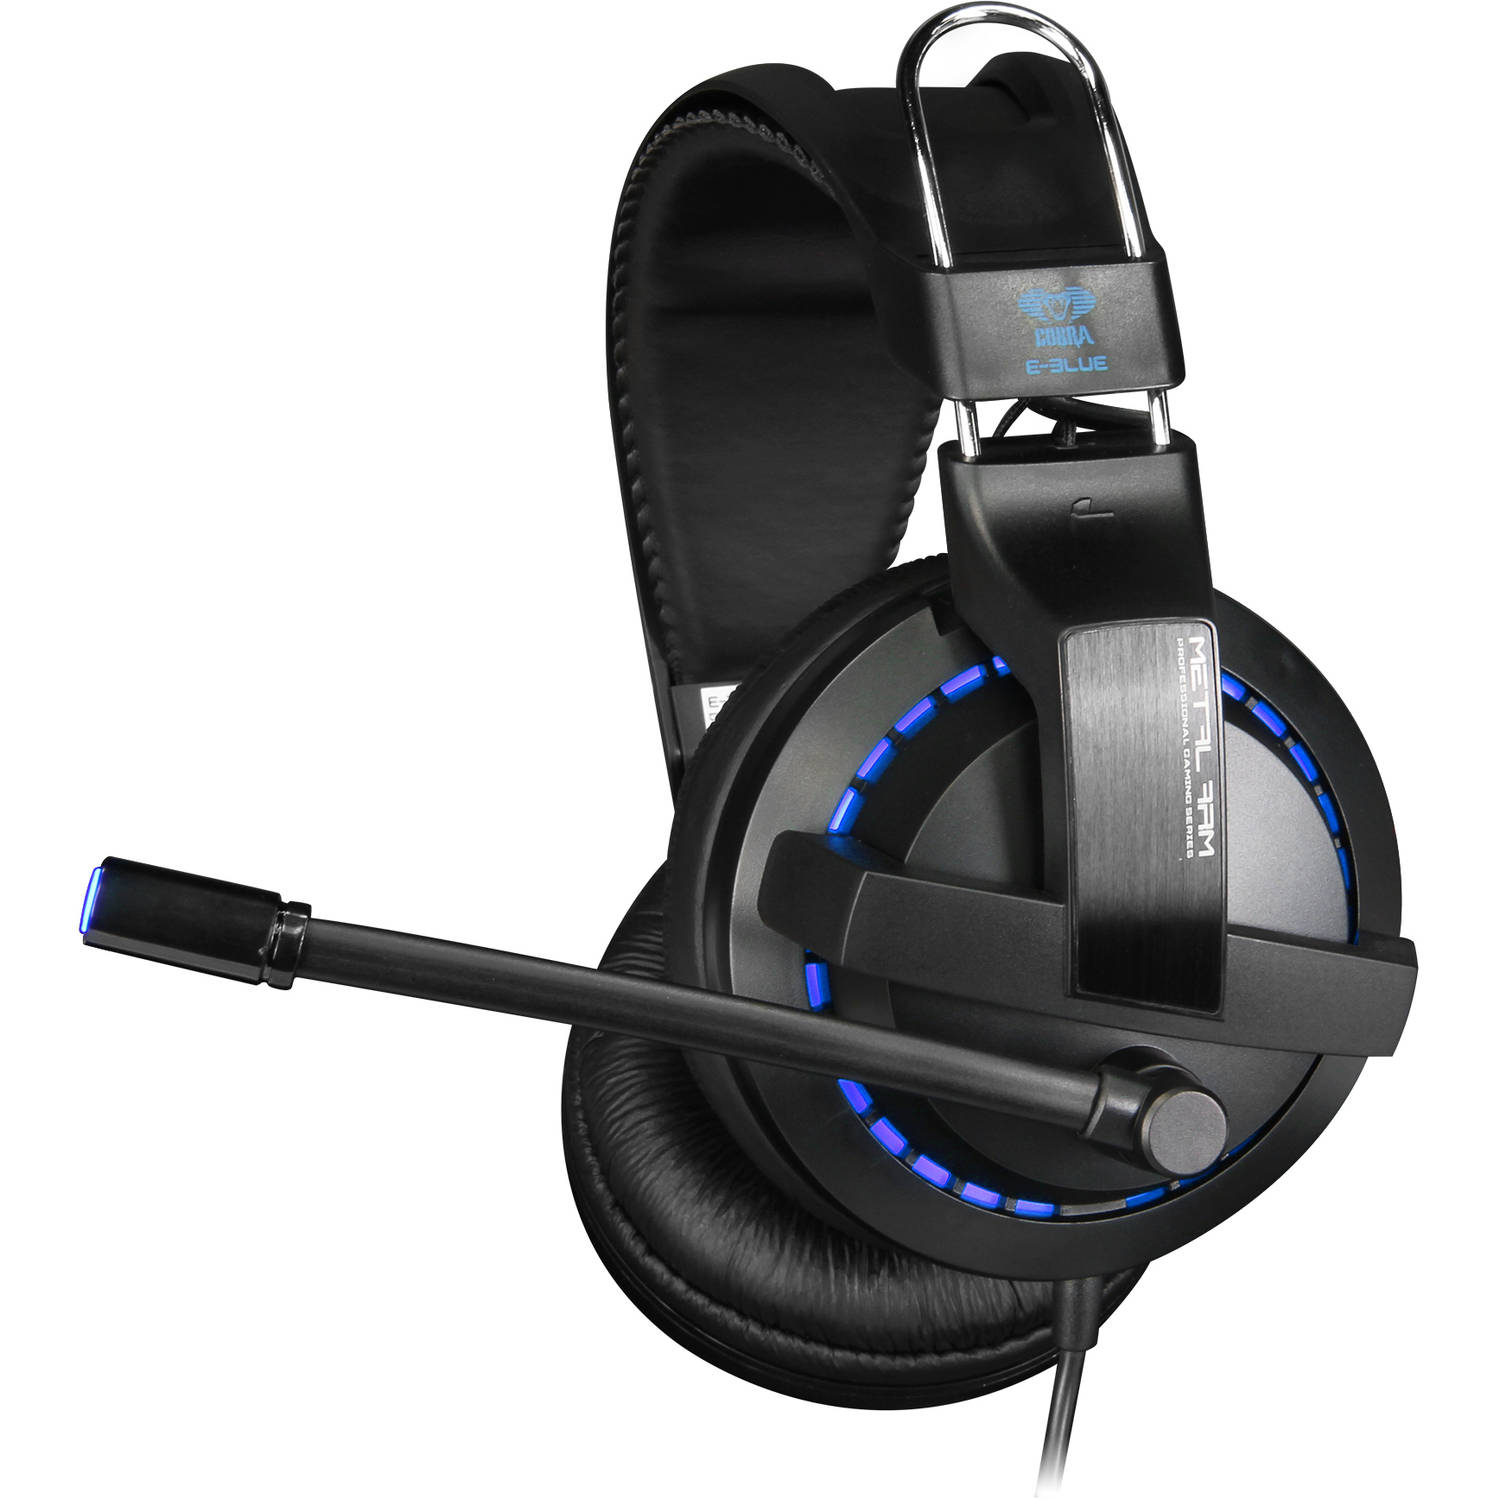 Enhance Gx H2 Computer Gaming Headset Stereo Pc Cd Writer 8211 How The Burner Works With Plush Ear Padding Adjustable Headband And Microphone Computers